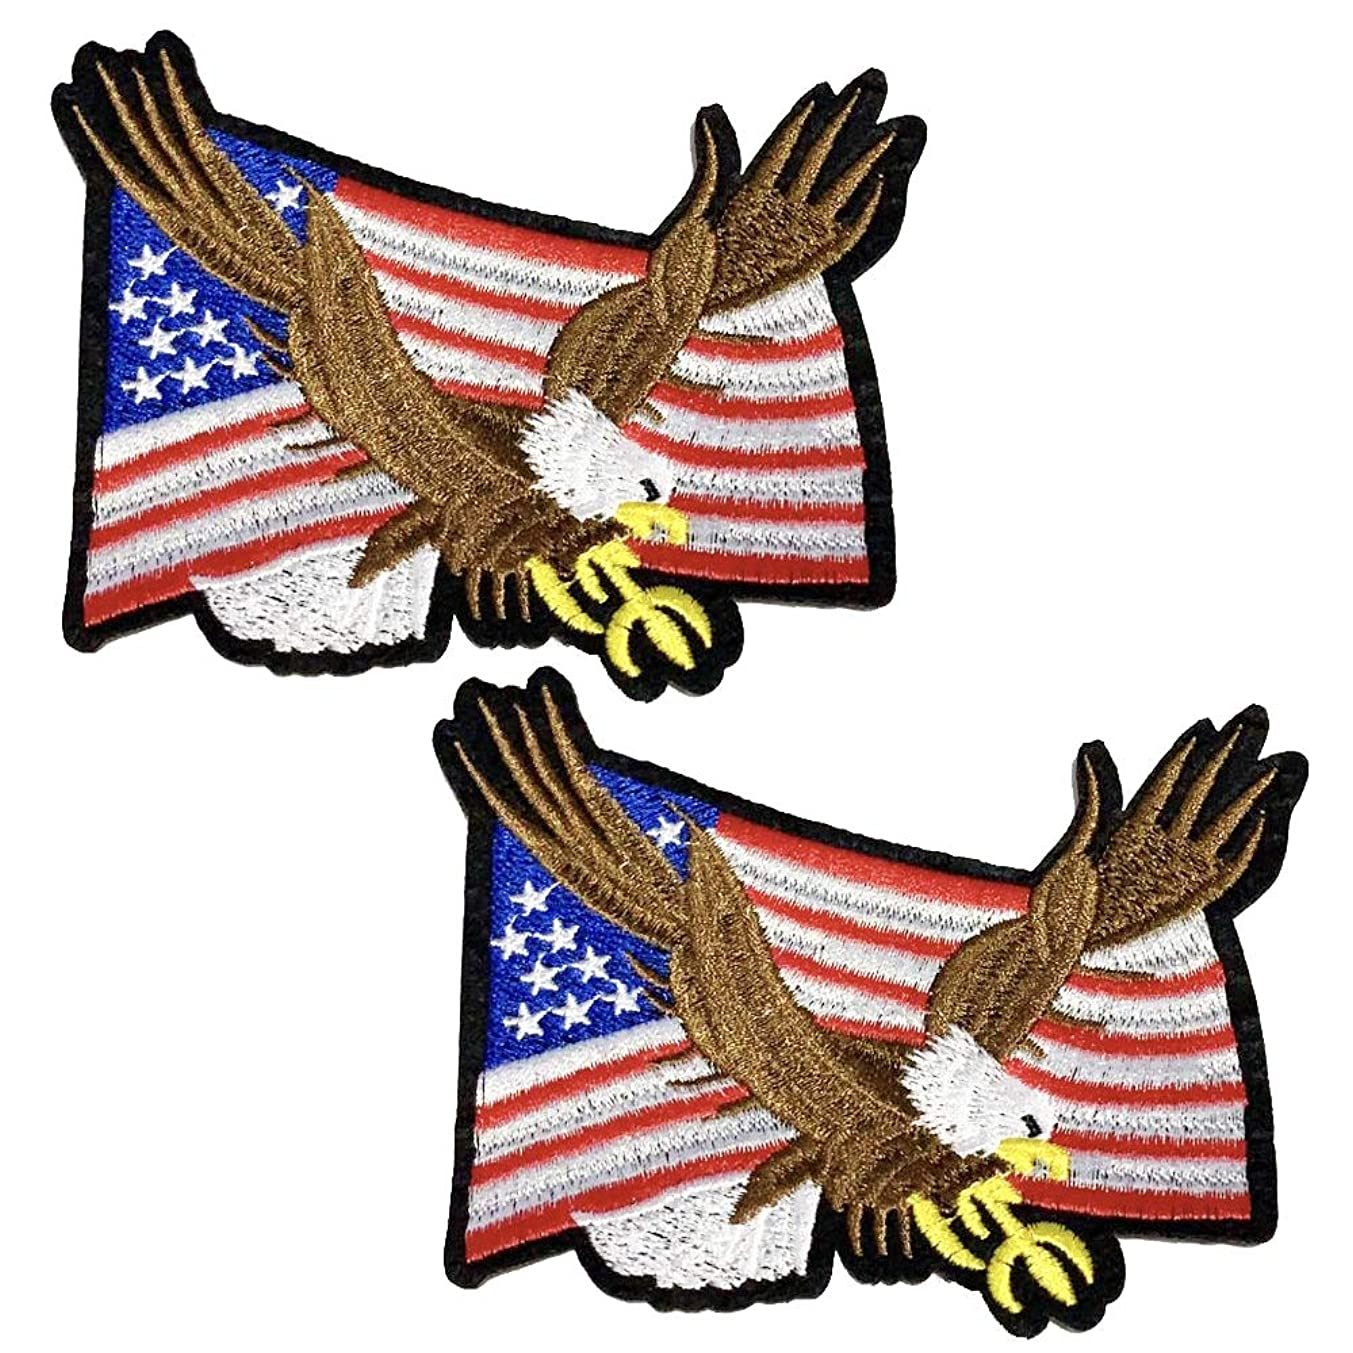 2 Pcs Delicate Embroidered Patches,Iron On Patches, Sew On Applique Patch,American Eagle Embroidery Patches, Cool Patches for Men, Women, Boys, Girls, Kids